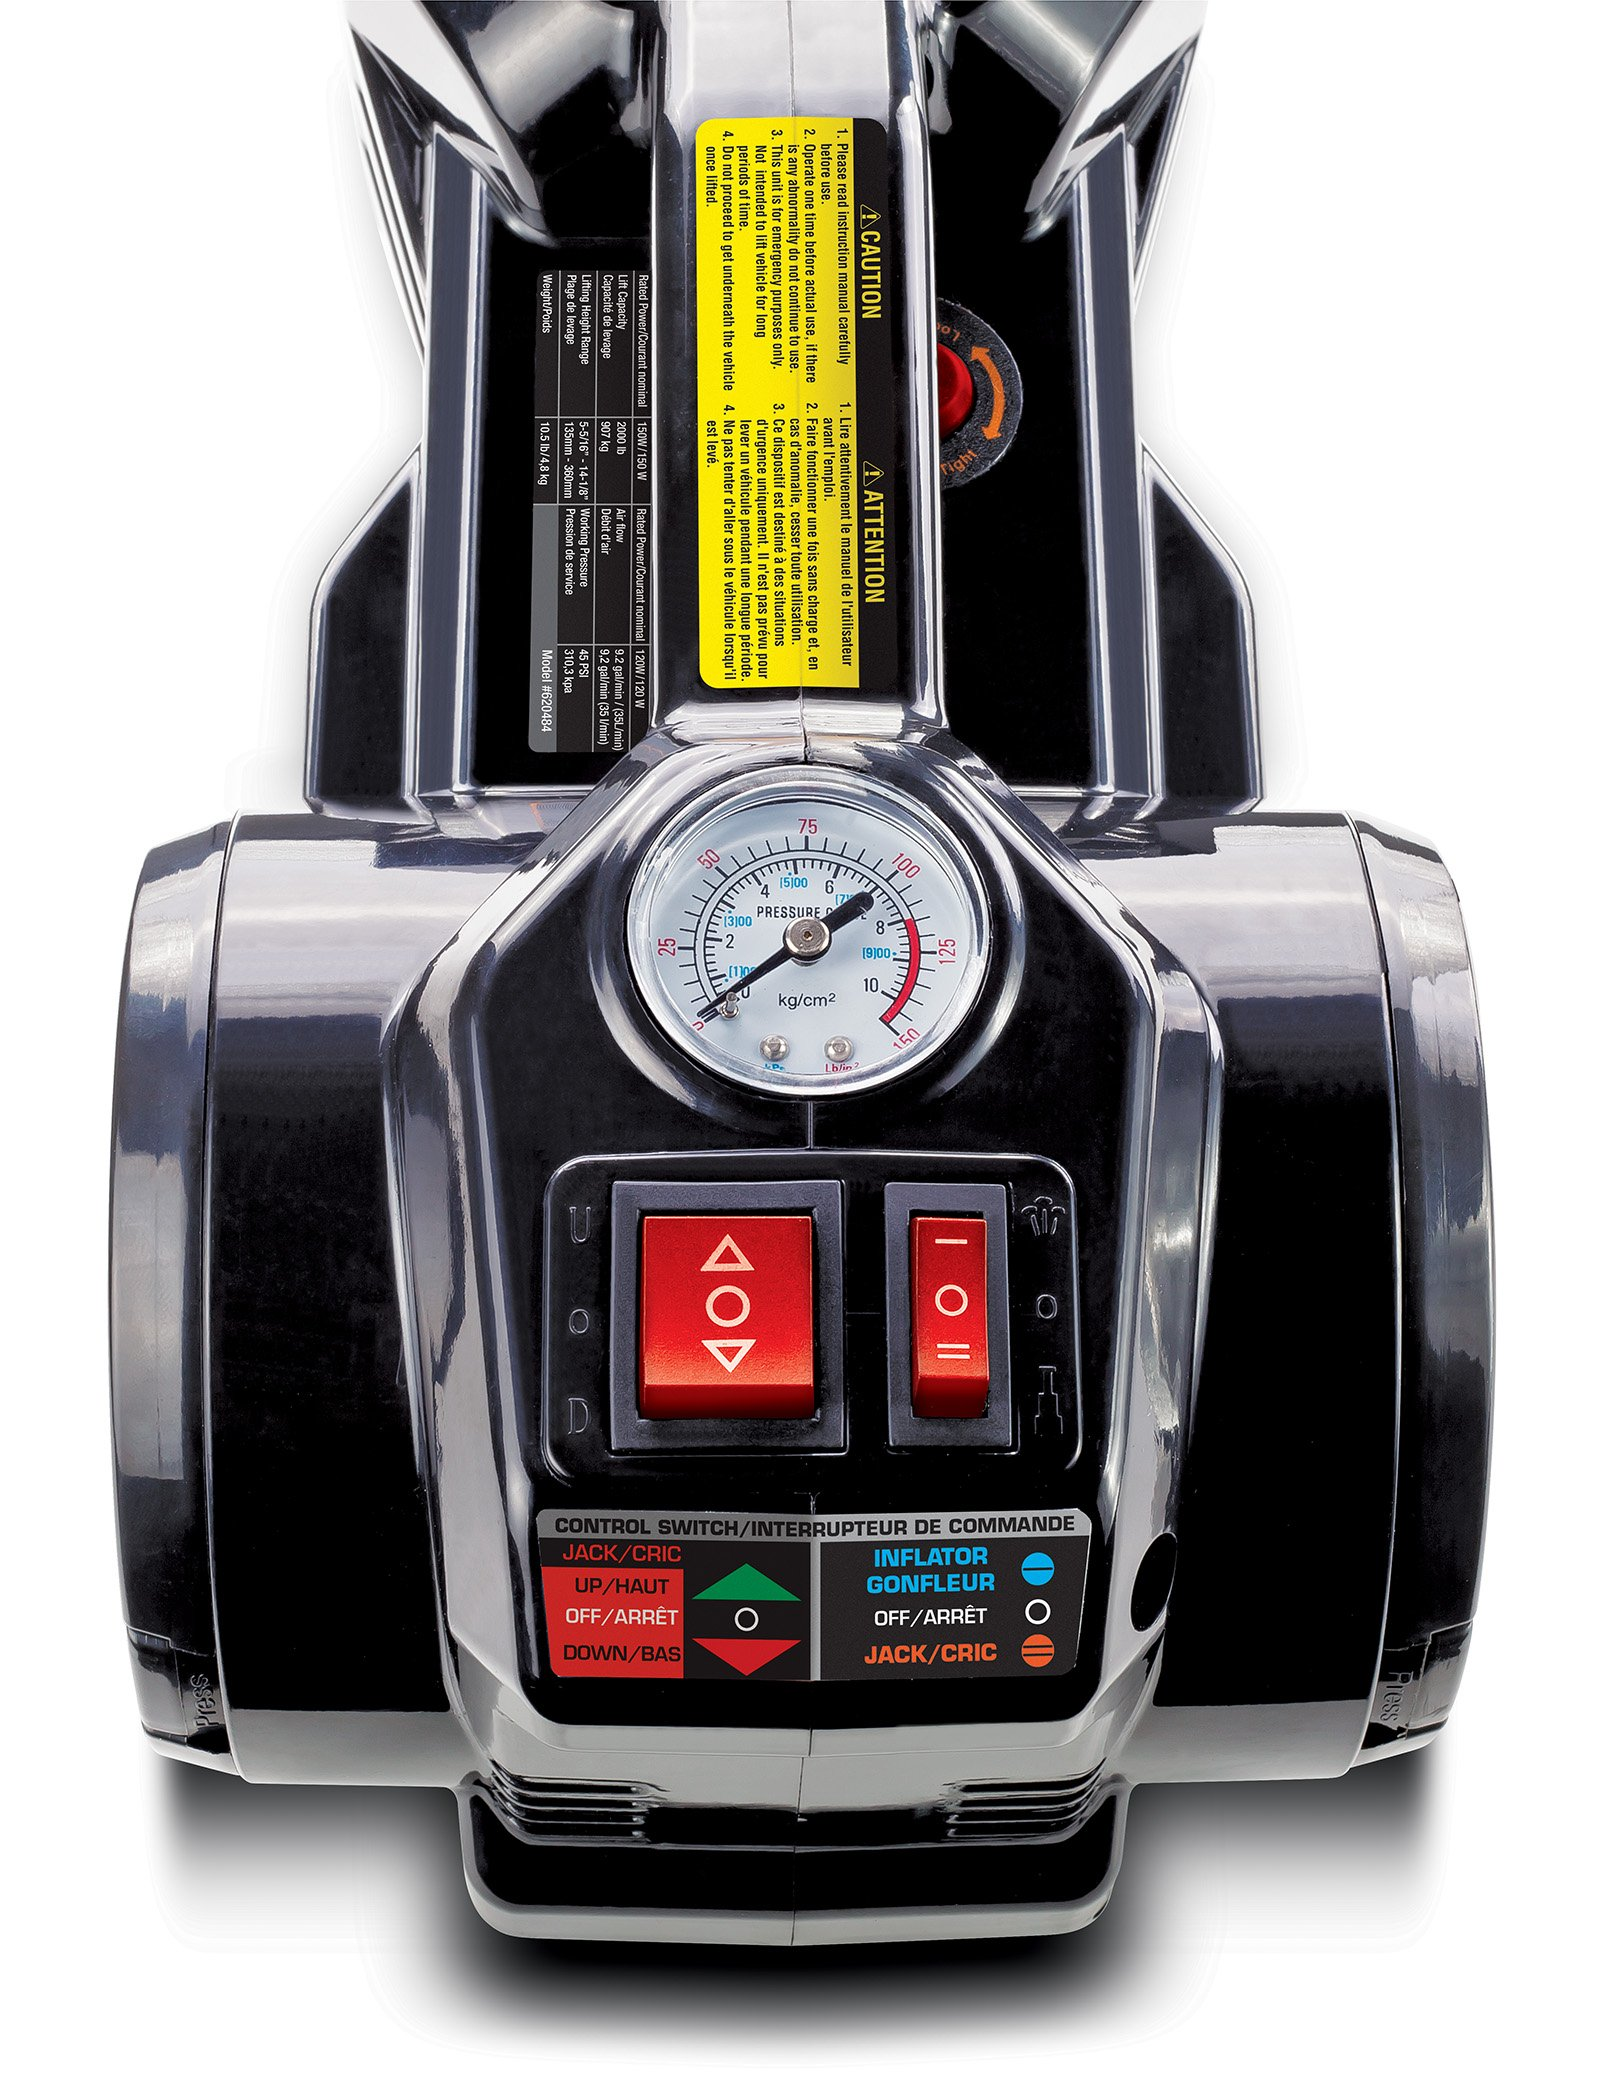 Powerbuilt 620484 12V Electric Jack and Tire inflator by Powerbuilt (Image #3)